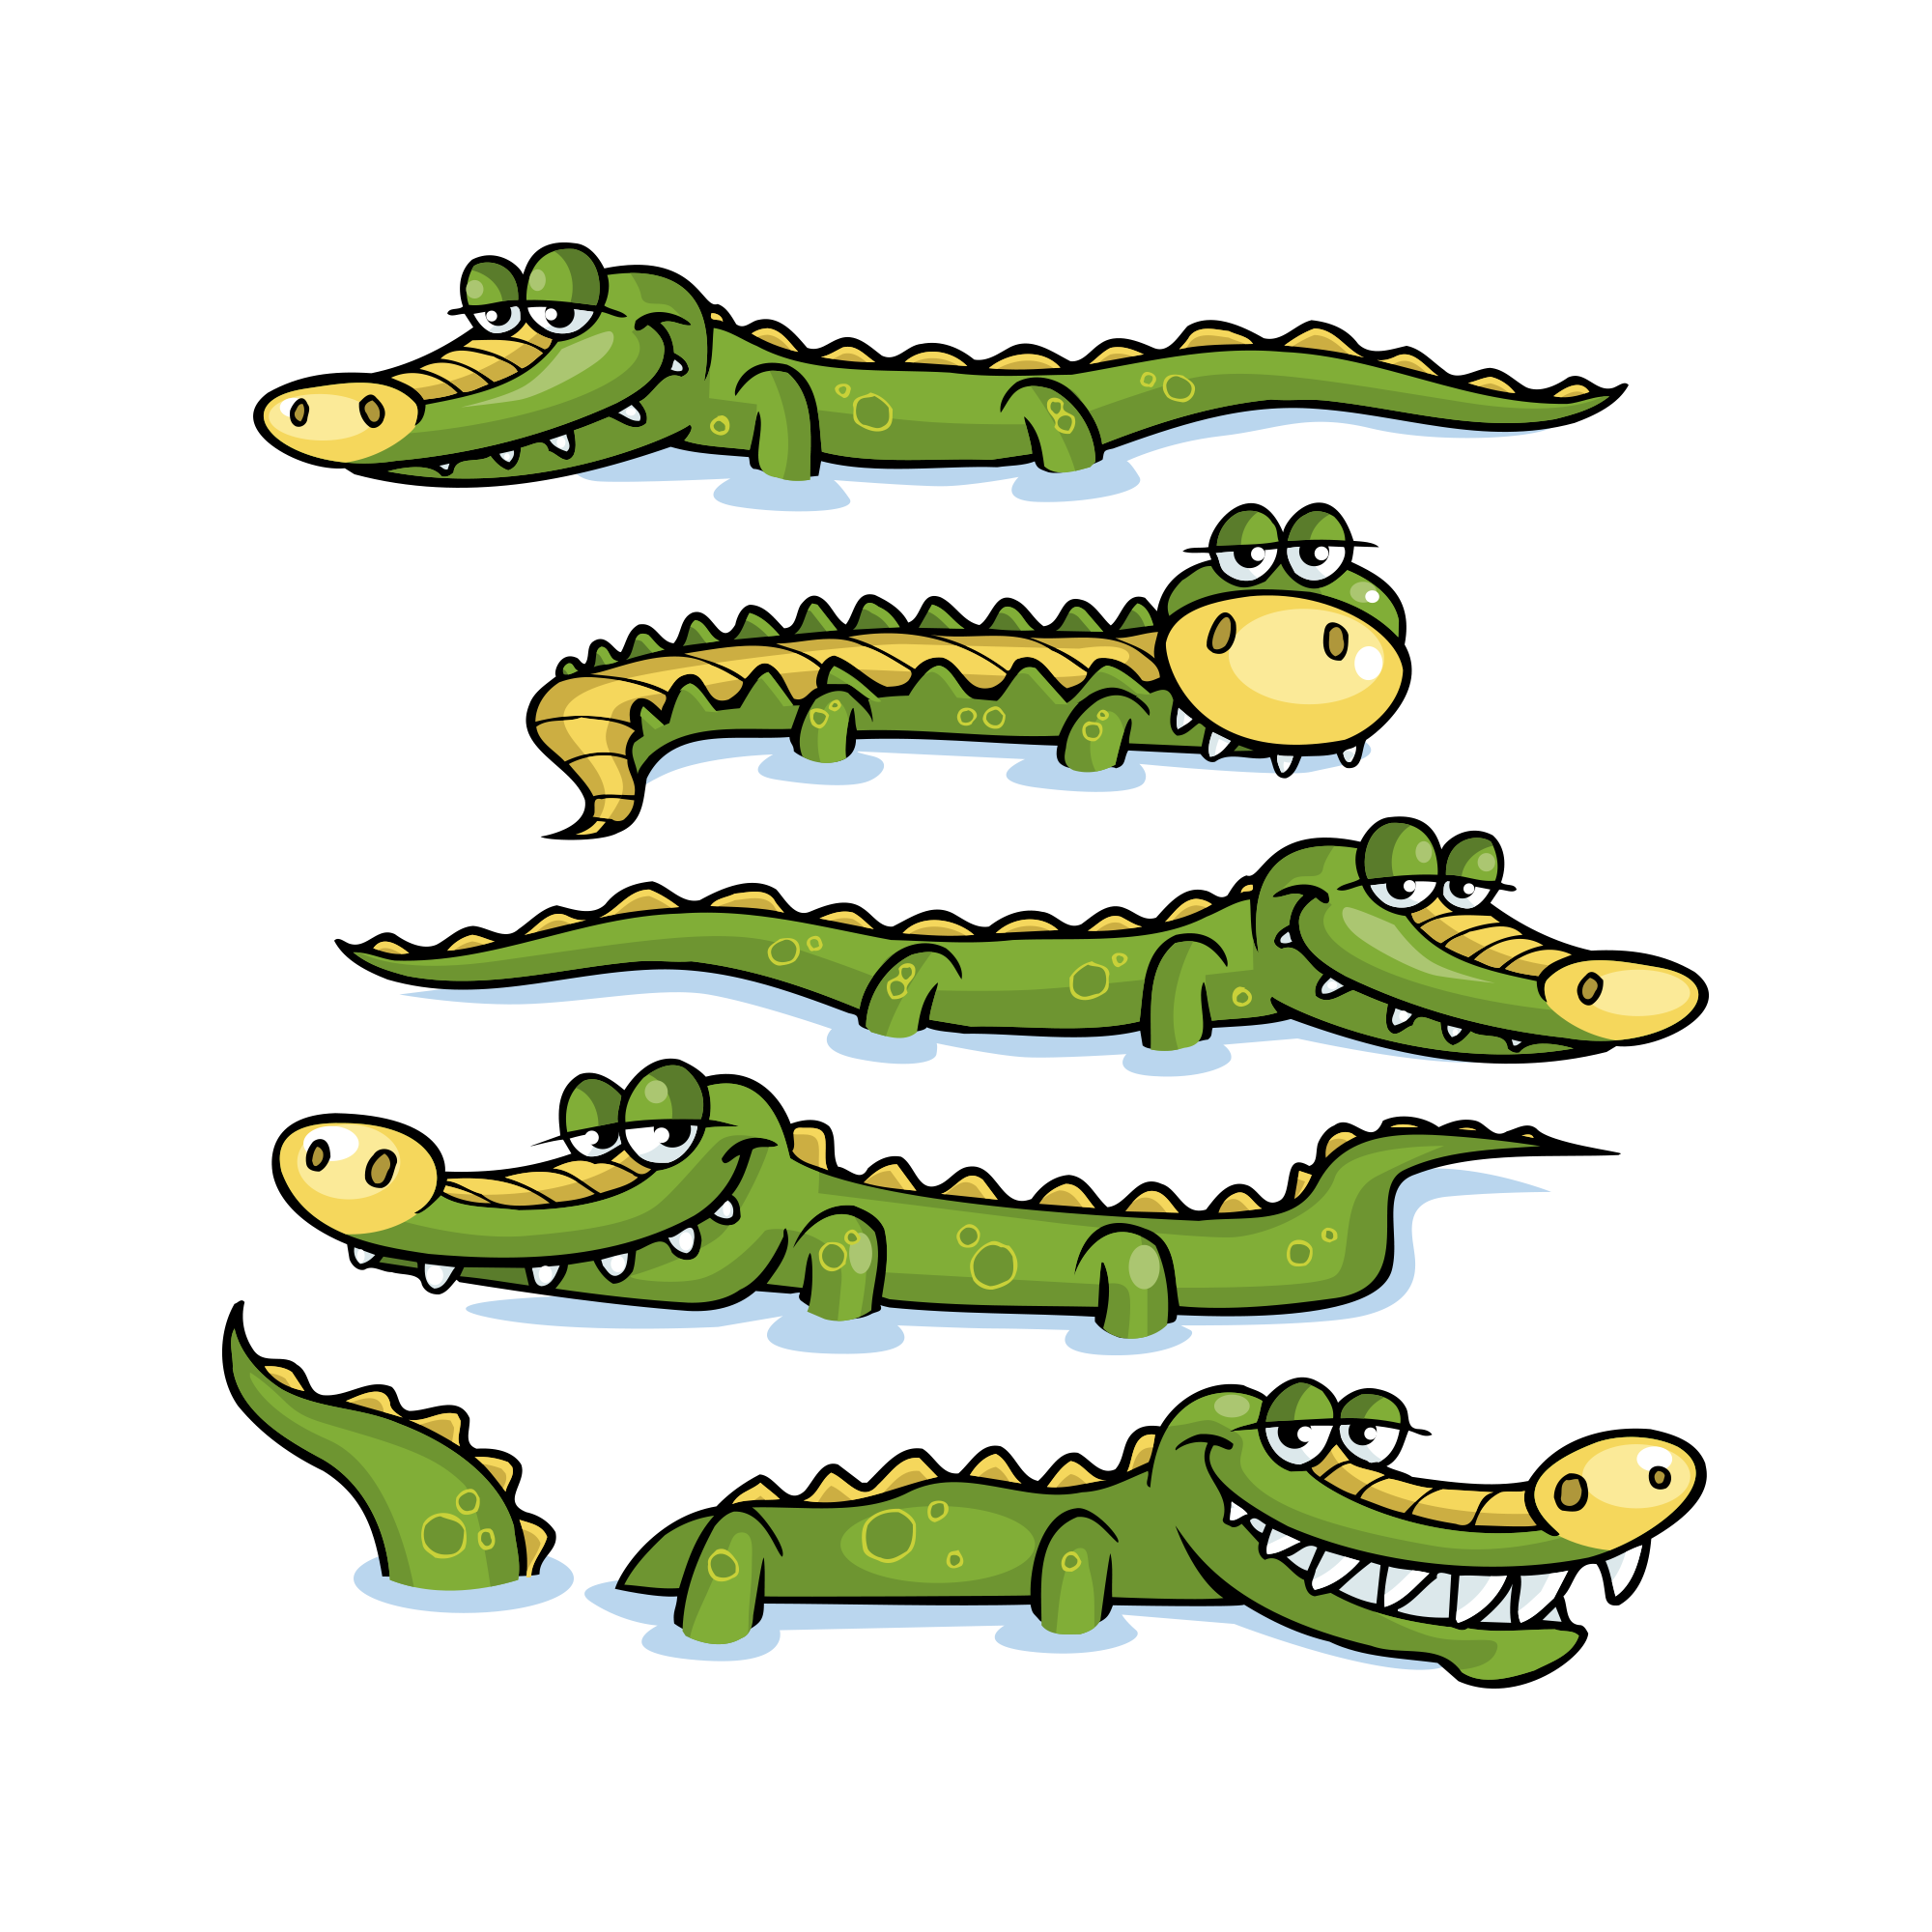 Halloween alligator clipart jpg transparent library Nile Crocodile Clipart at GetDrawings.com   Free for personal use ... jpg transparent library